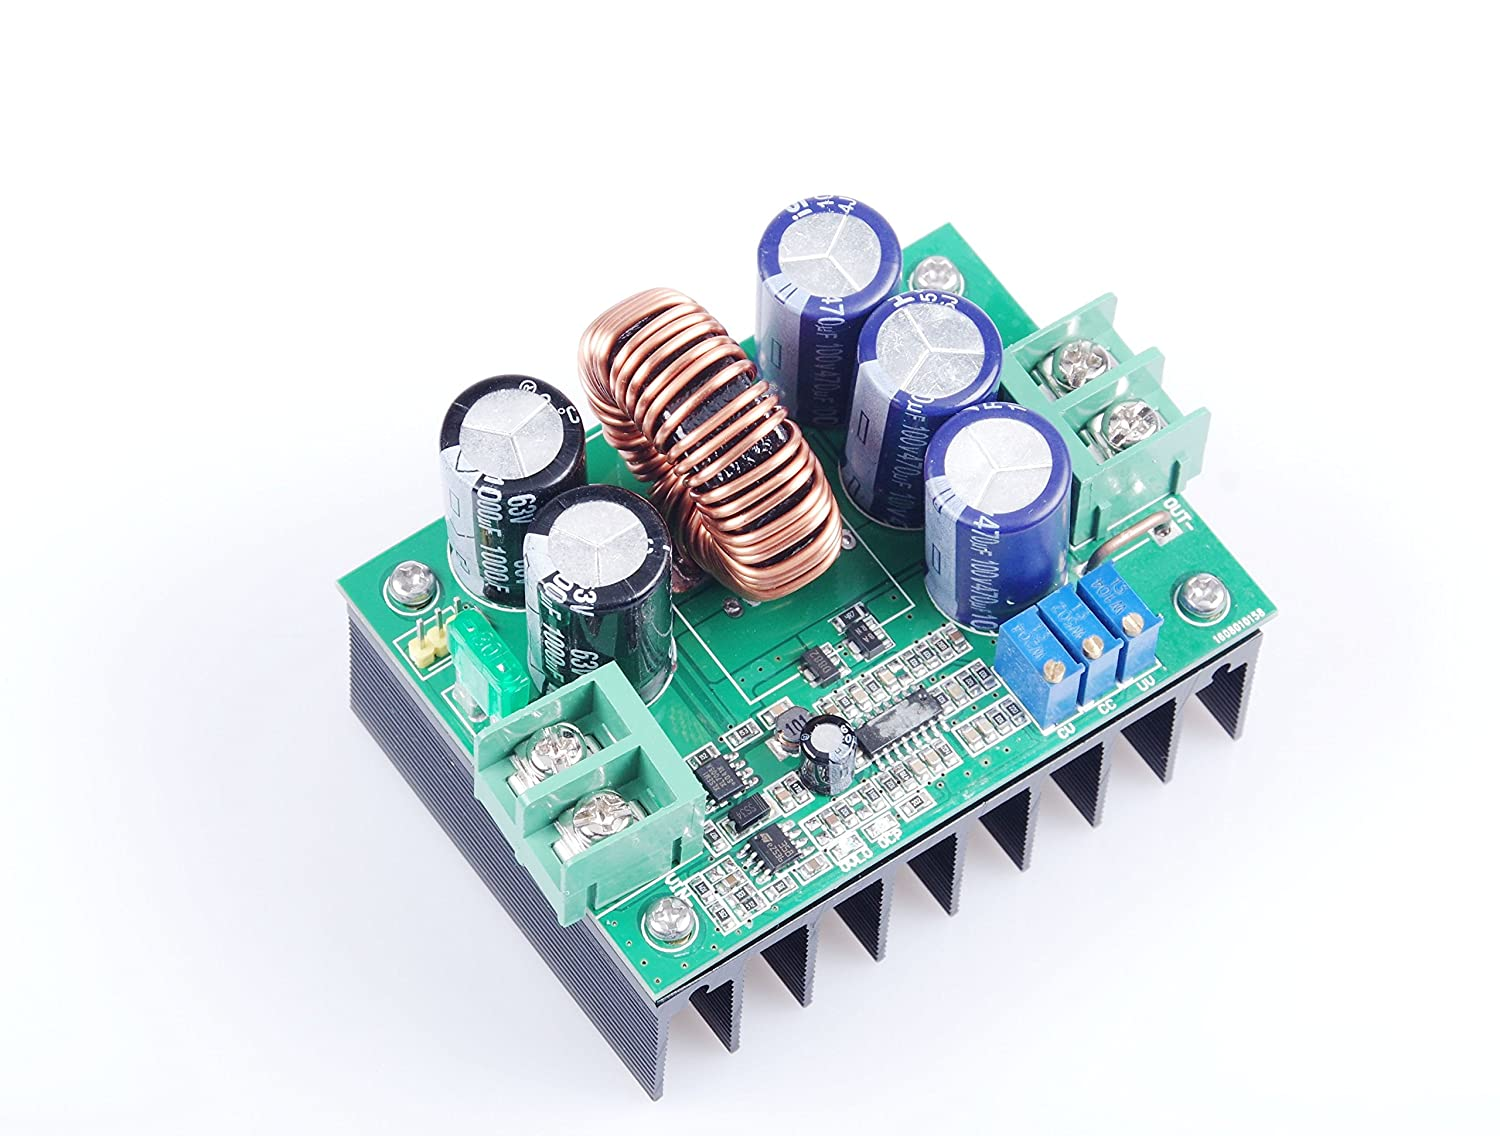 KNACRO NEW 1200W 20A super power constant voltage constant current module//solar boost controller//battery charging module 12V//24V//36V//48V//60V//72V DC 10V-60V to 12V-80V Step Up Power Supply